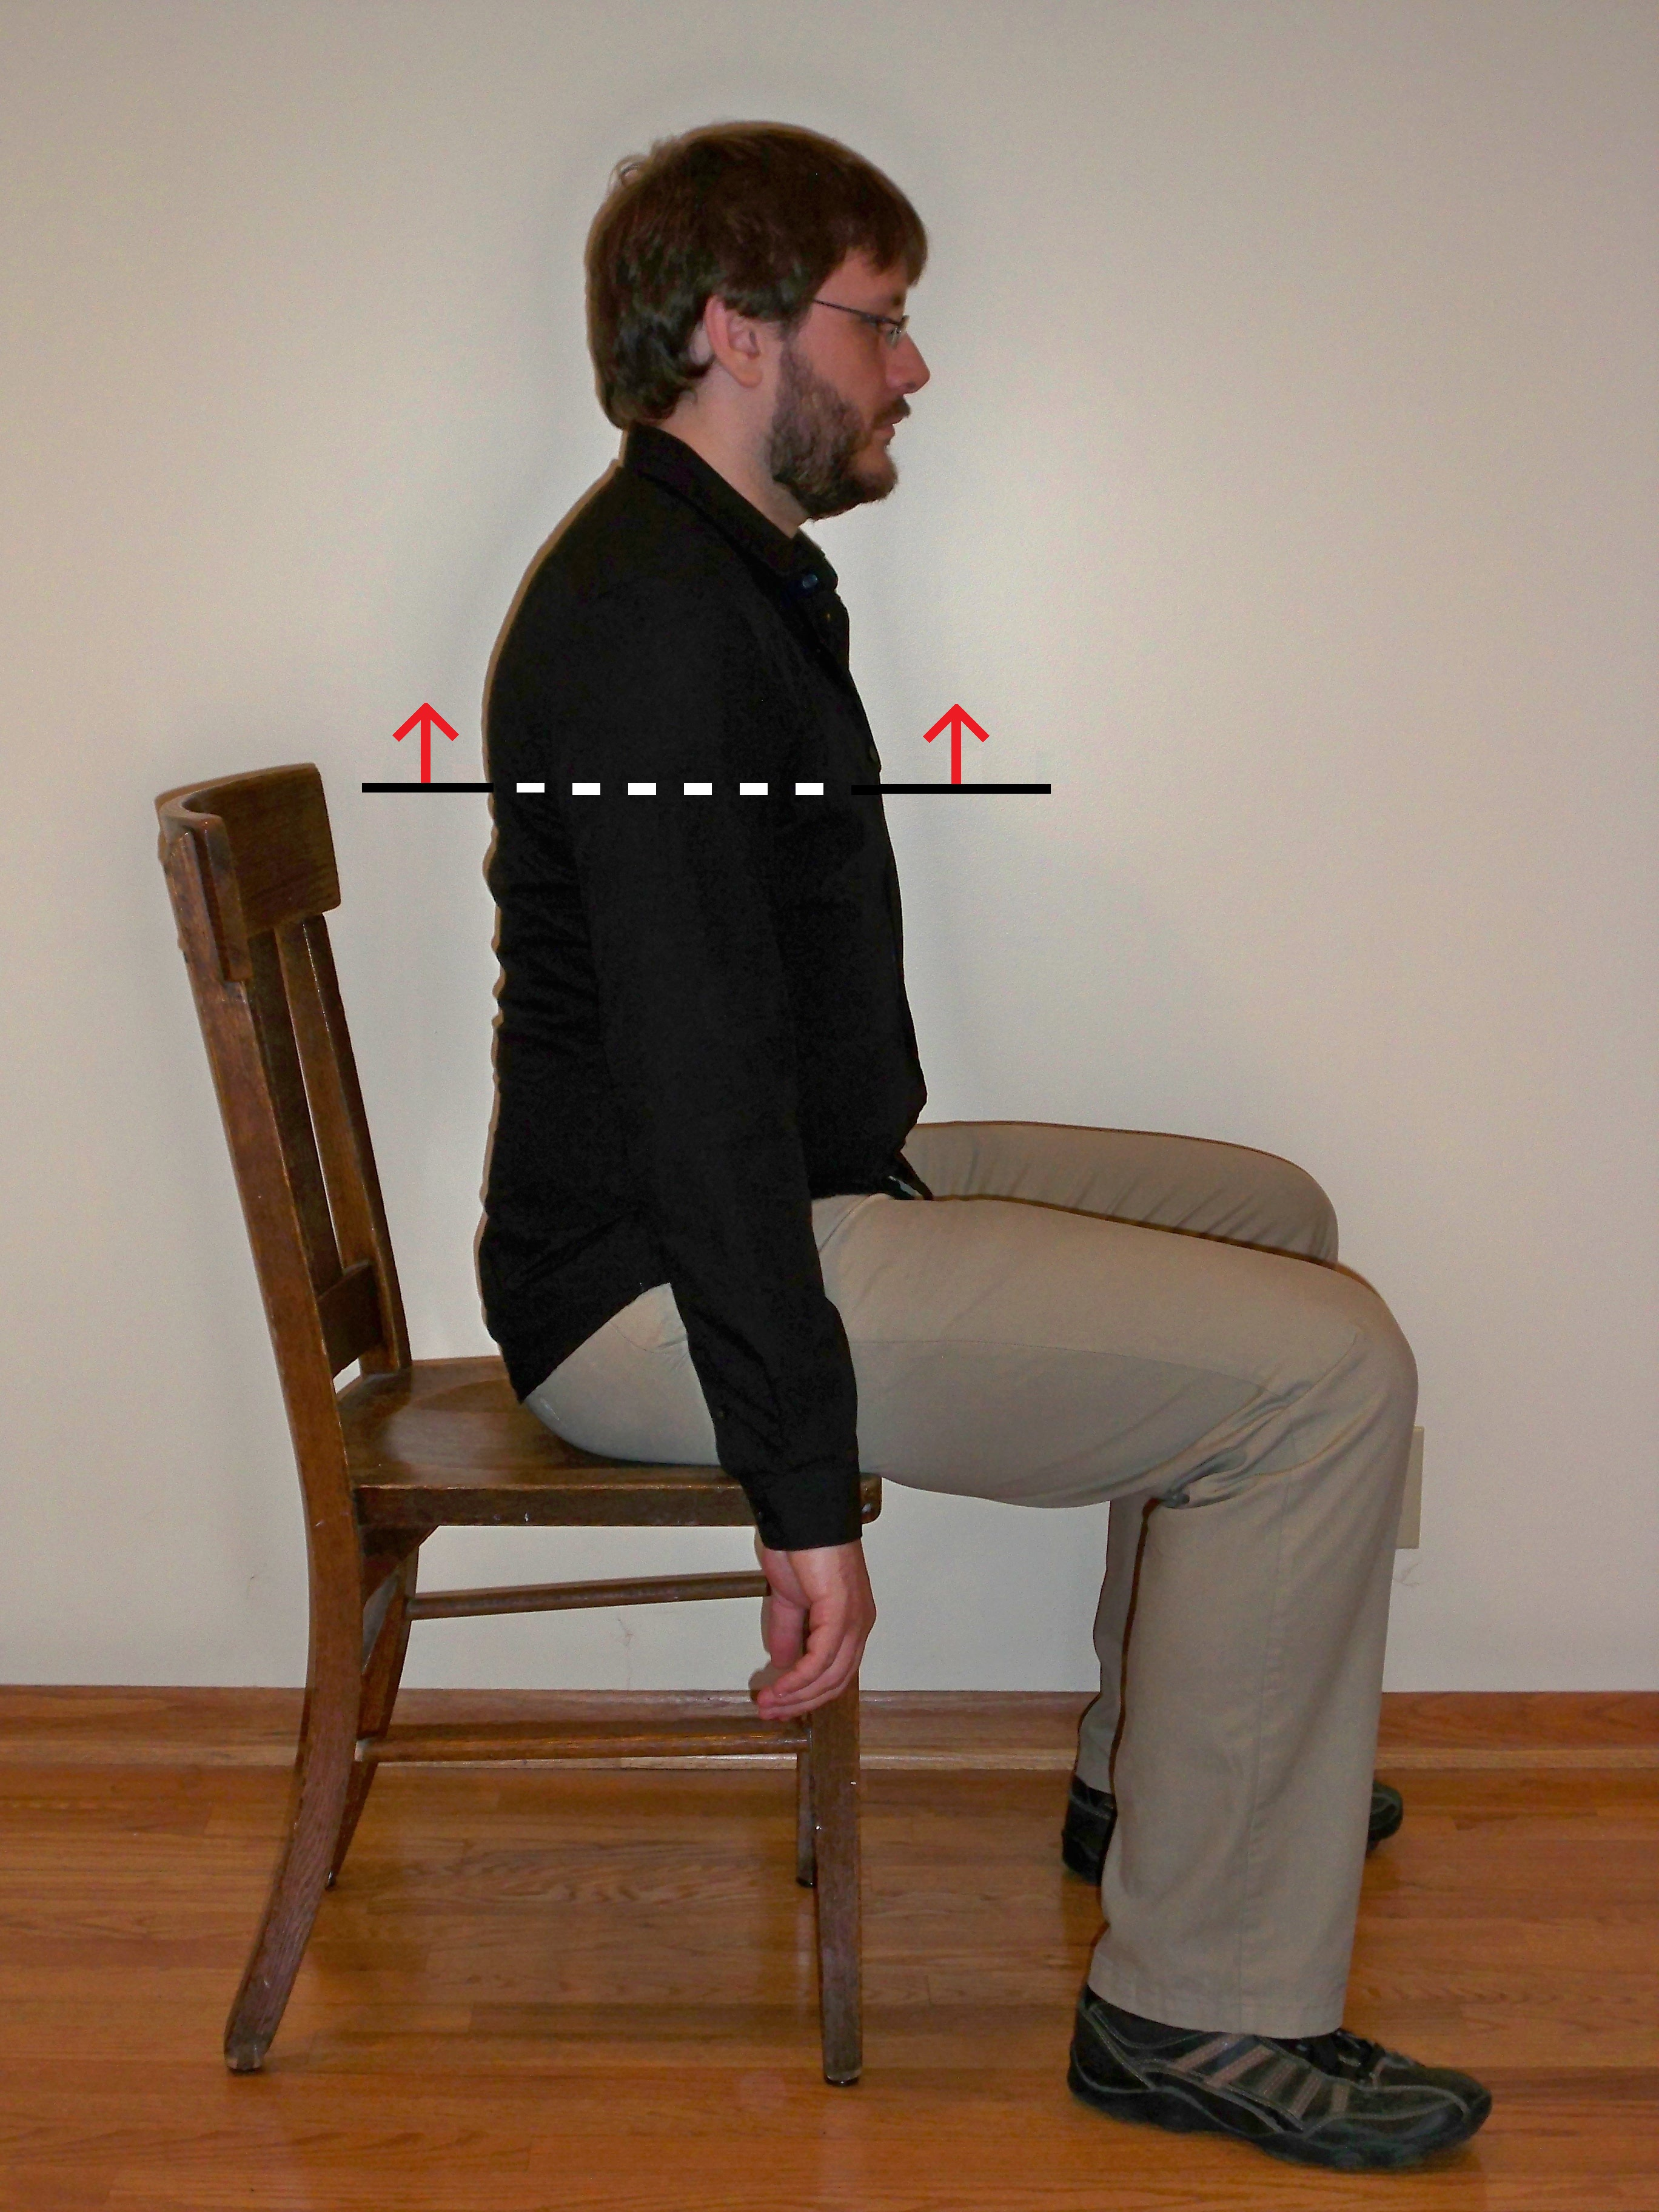 Man sitting in chair side - Lifting